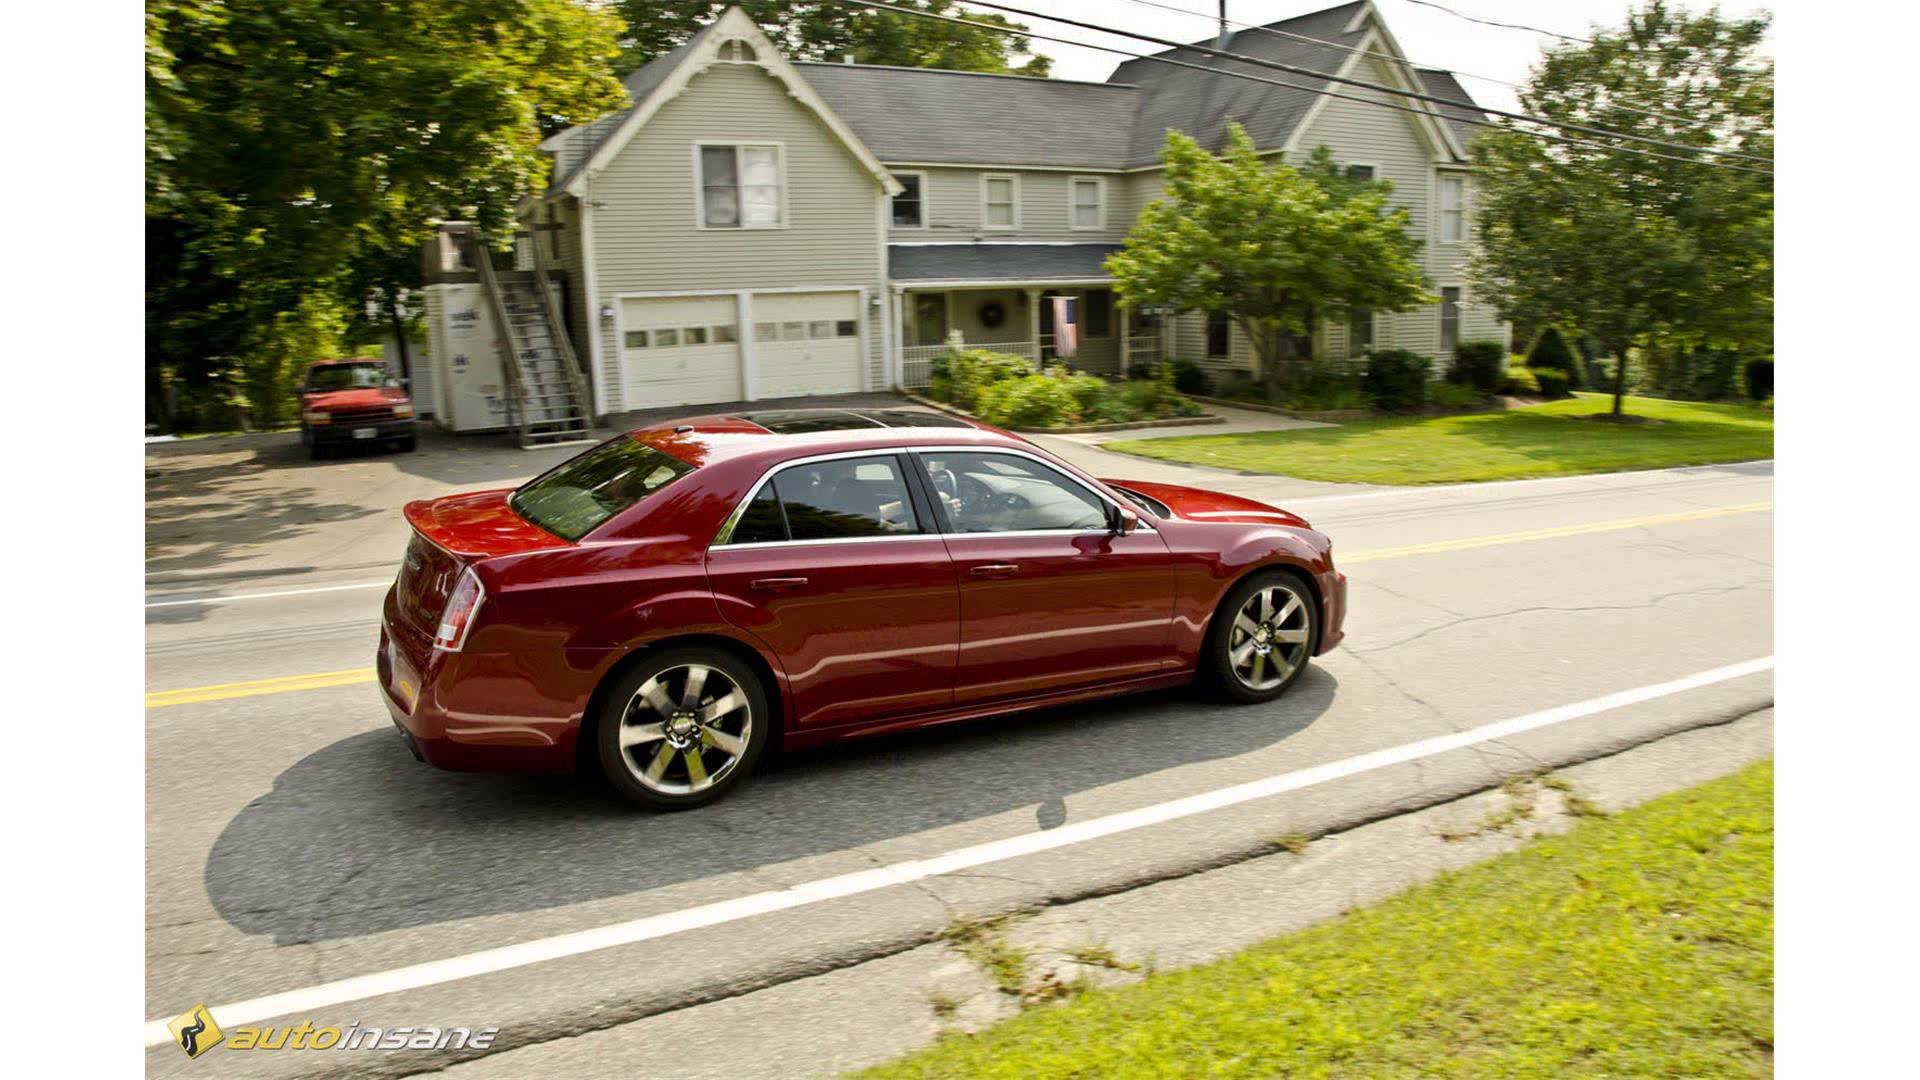 2015 Chrysler 300srt8 Car Review Video